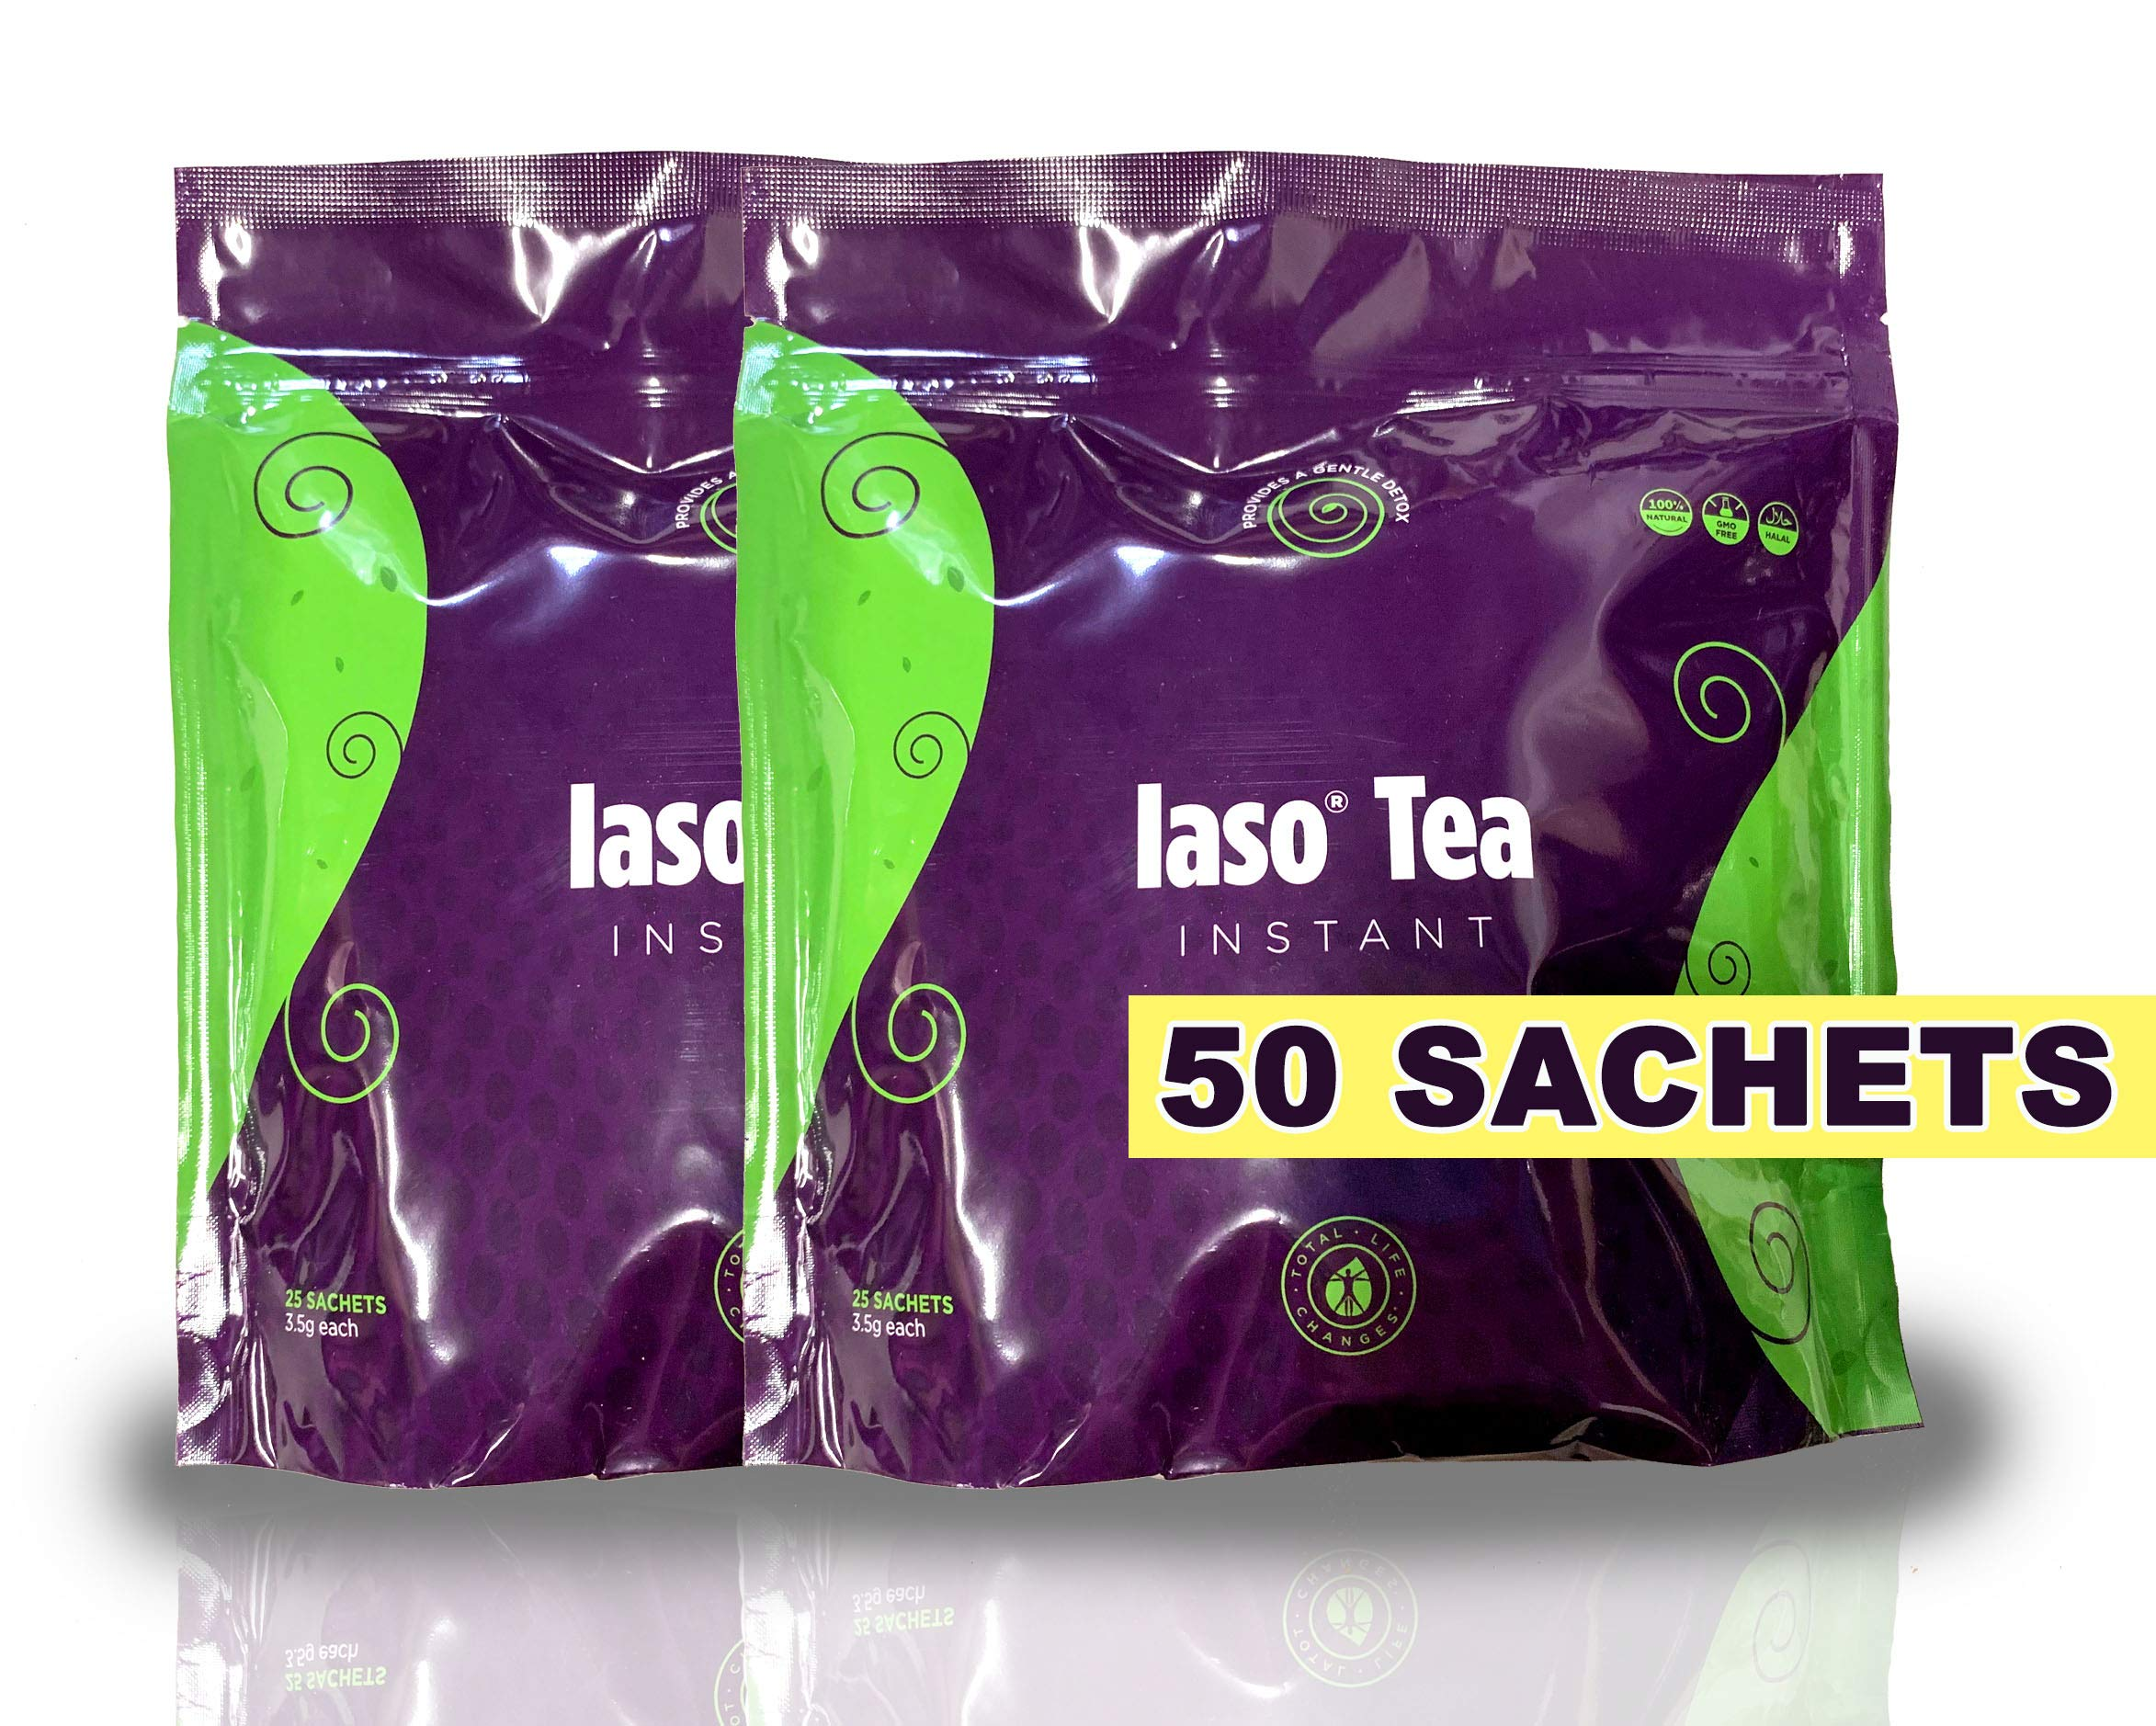 TLC Total Life Changes IASO Natural Detox Instant Herbal Tea (50 Sachets) Packaging May Vary Between Old & New in 201 by Total Life Changes (Image #1)